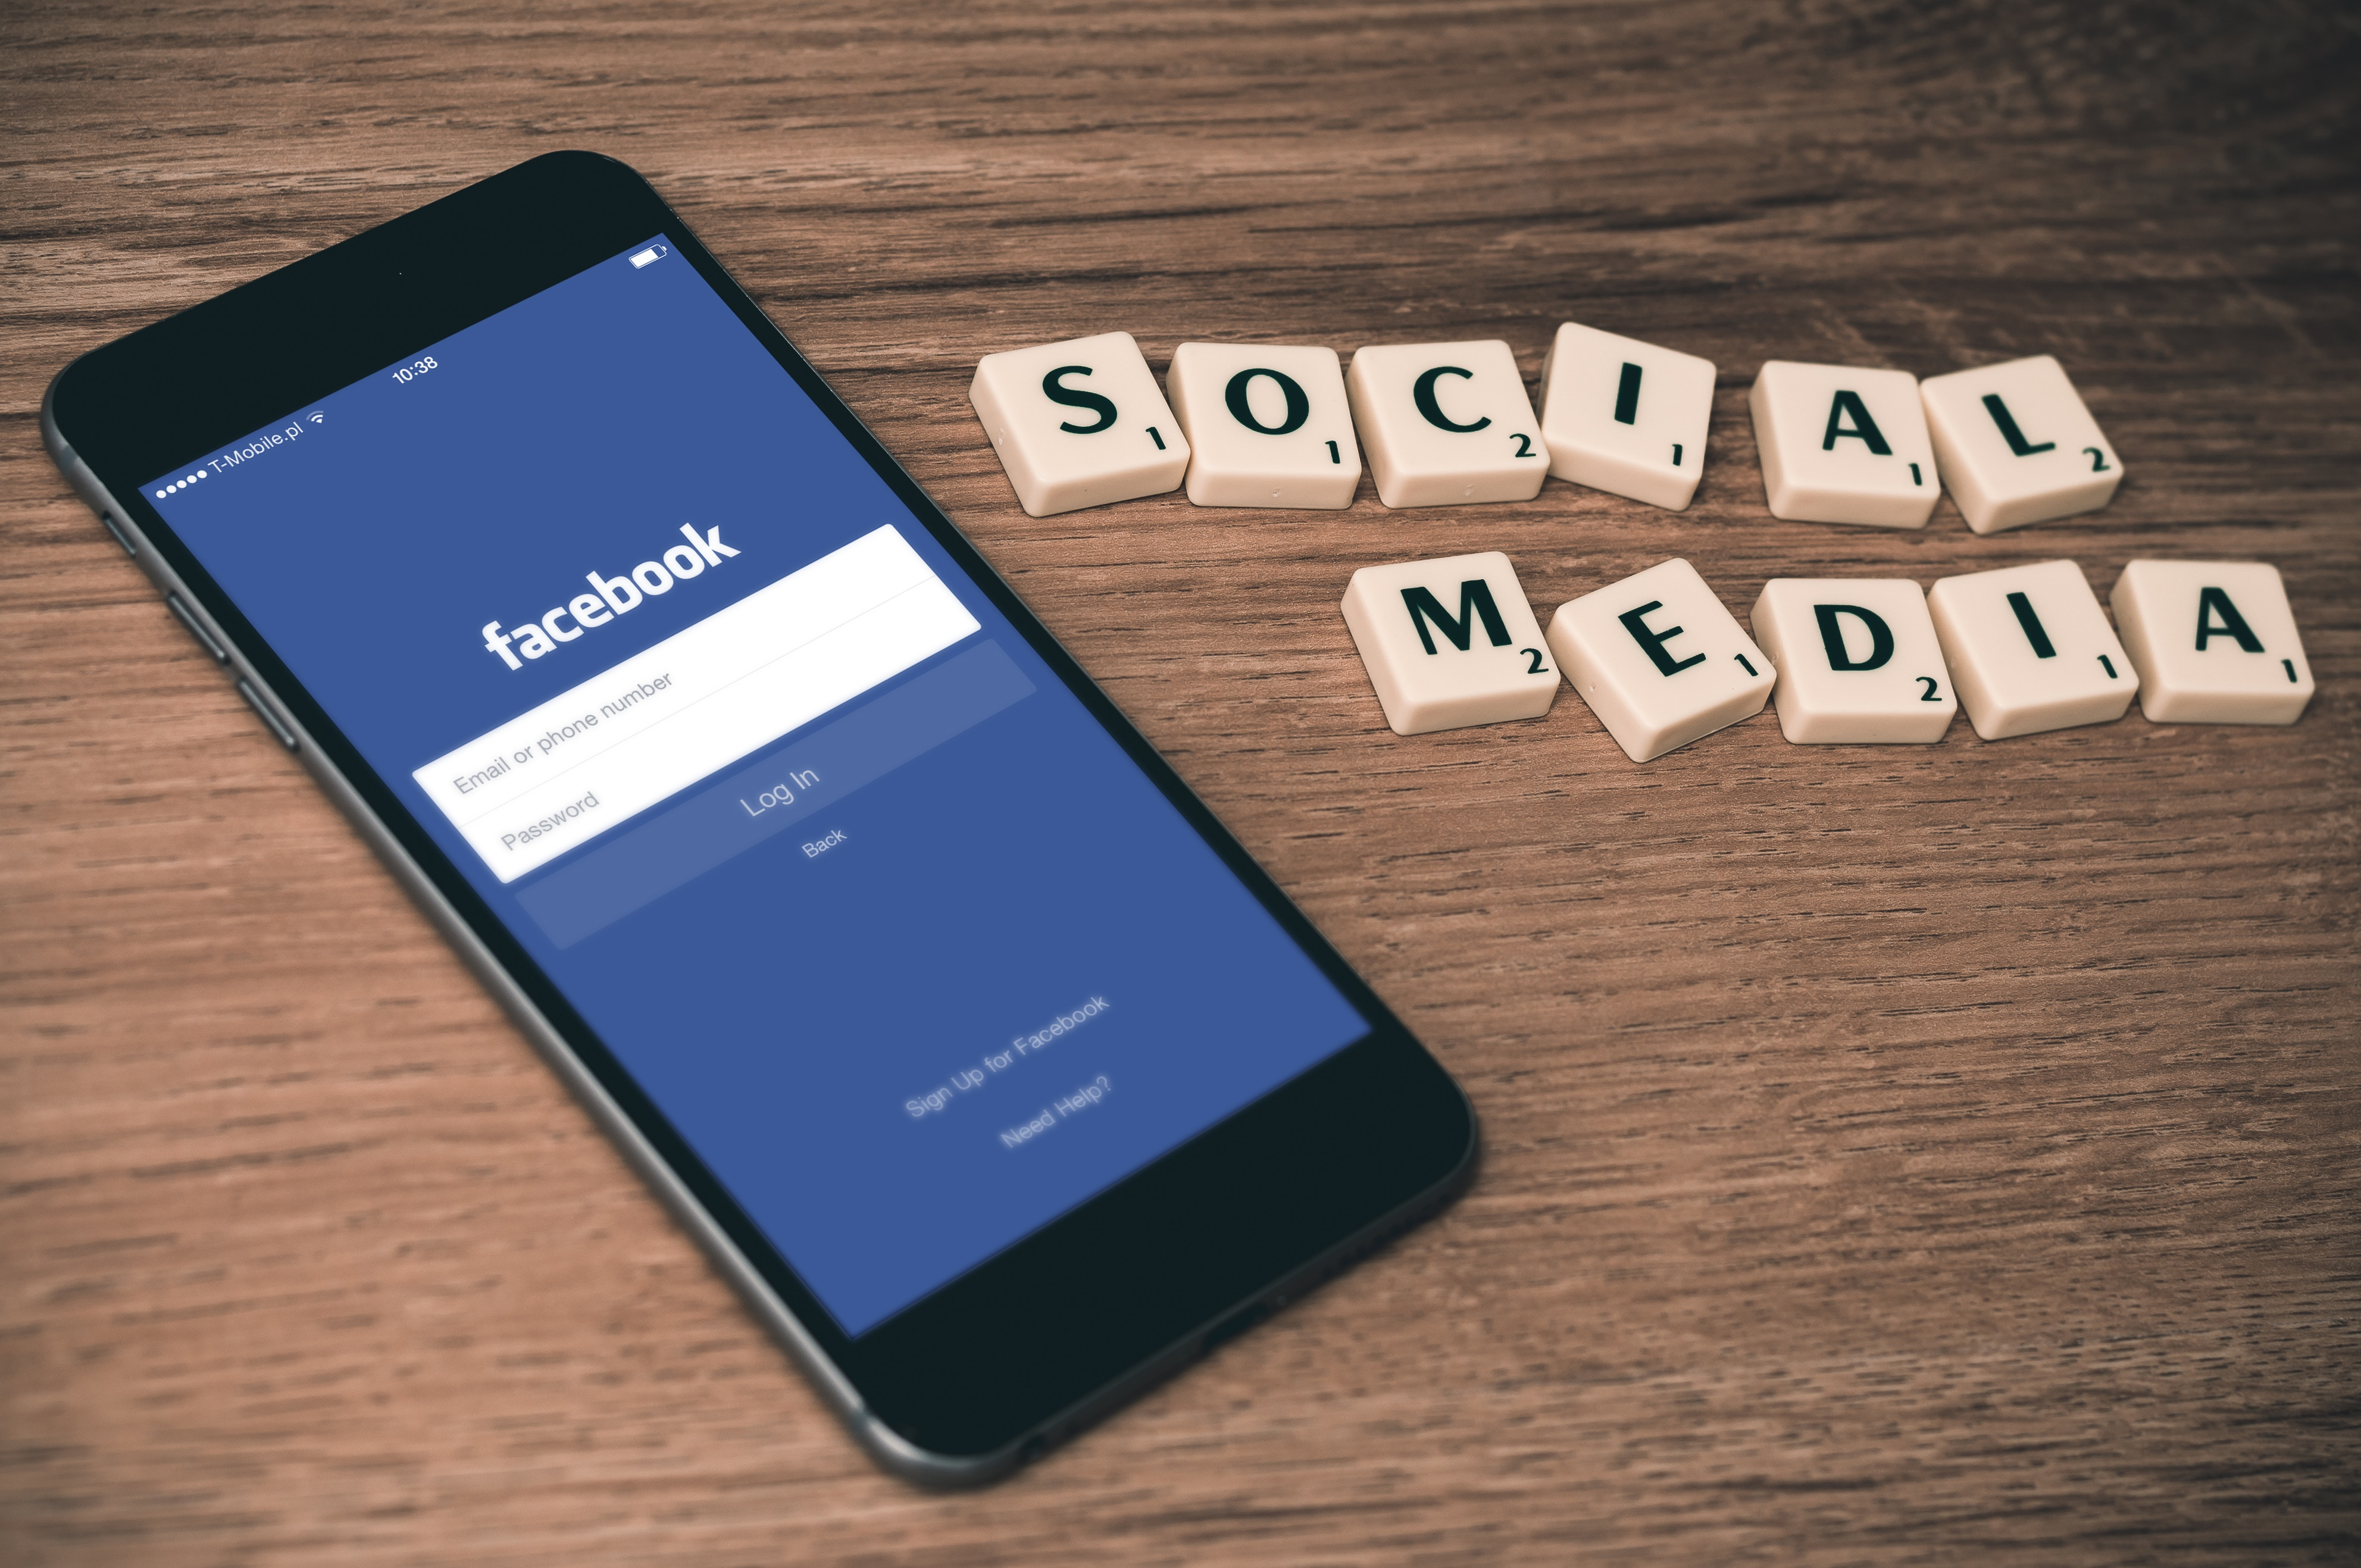 it can be tricky managing multiple social media accounts, here are some things to keep in mind.